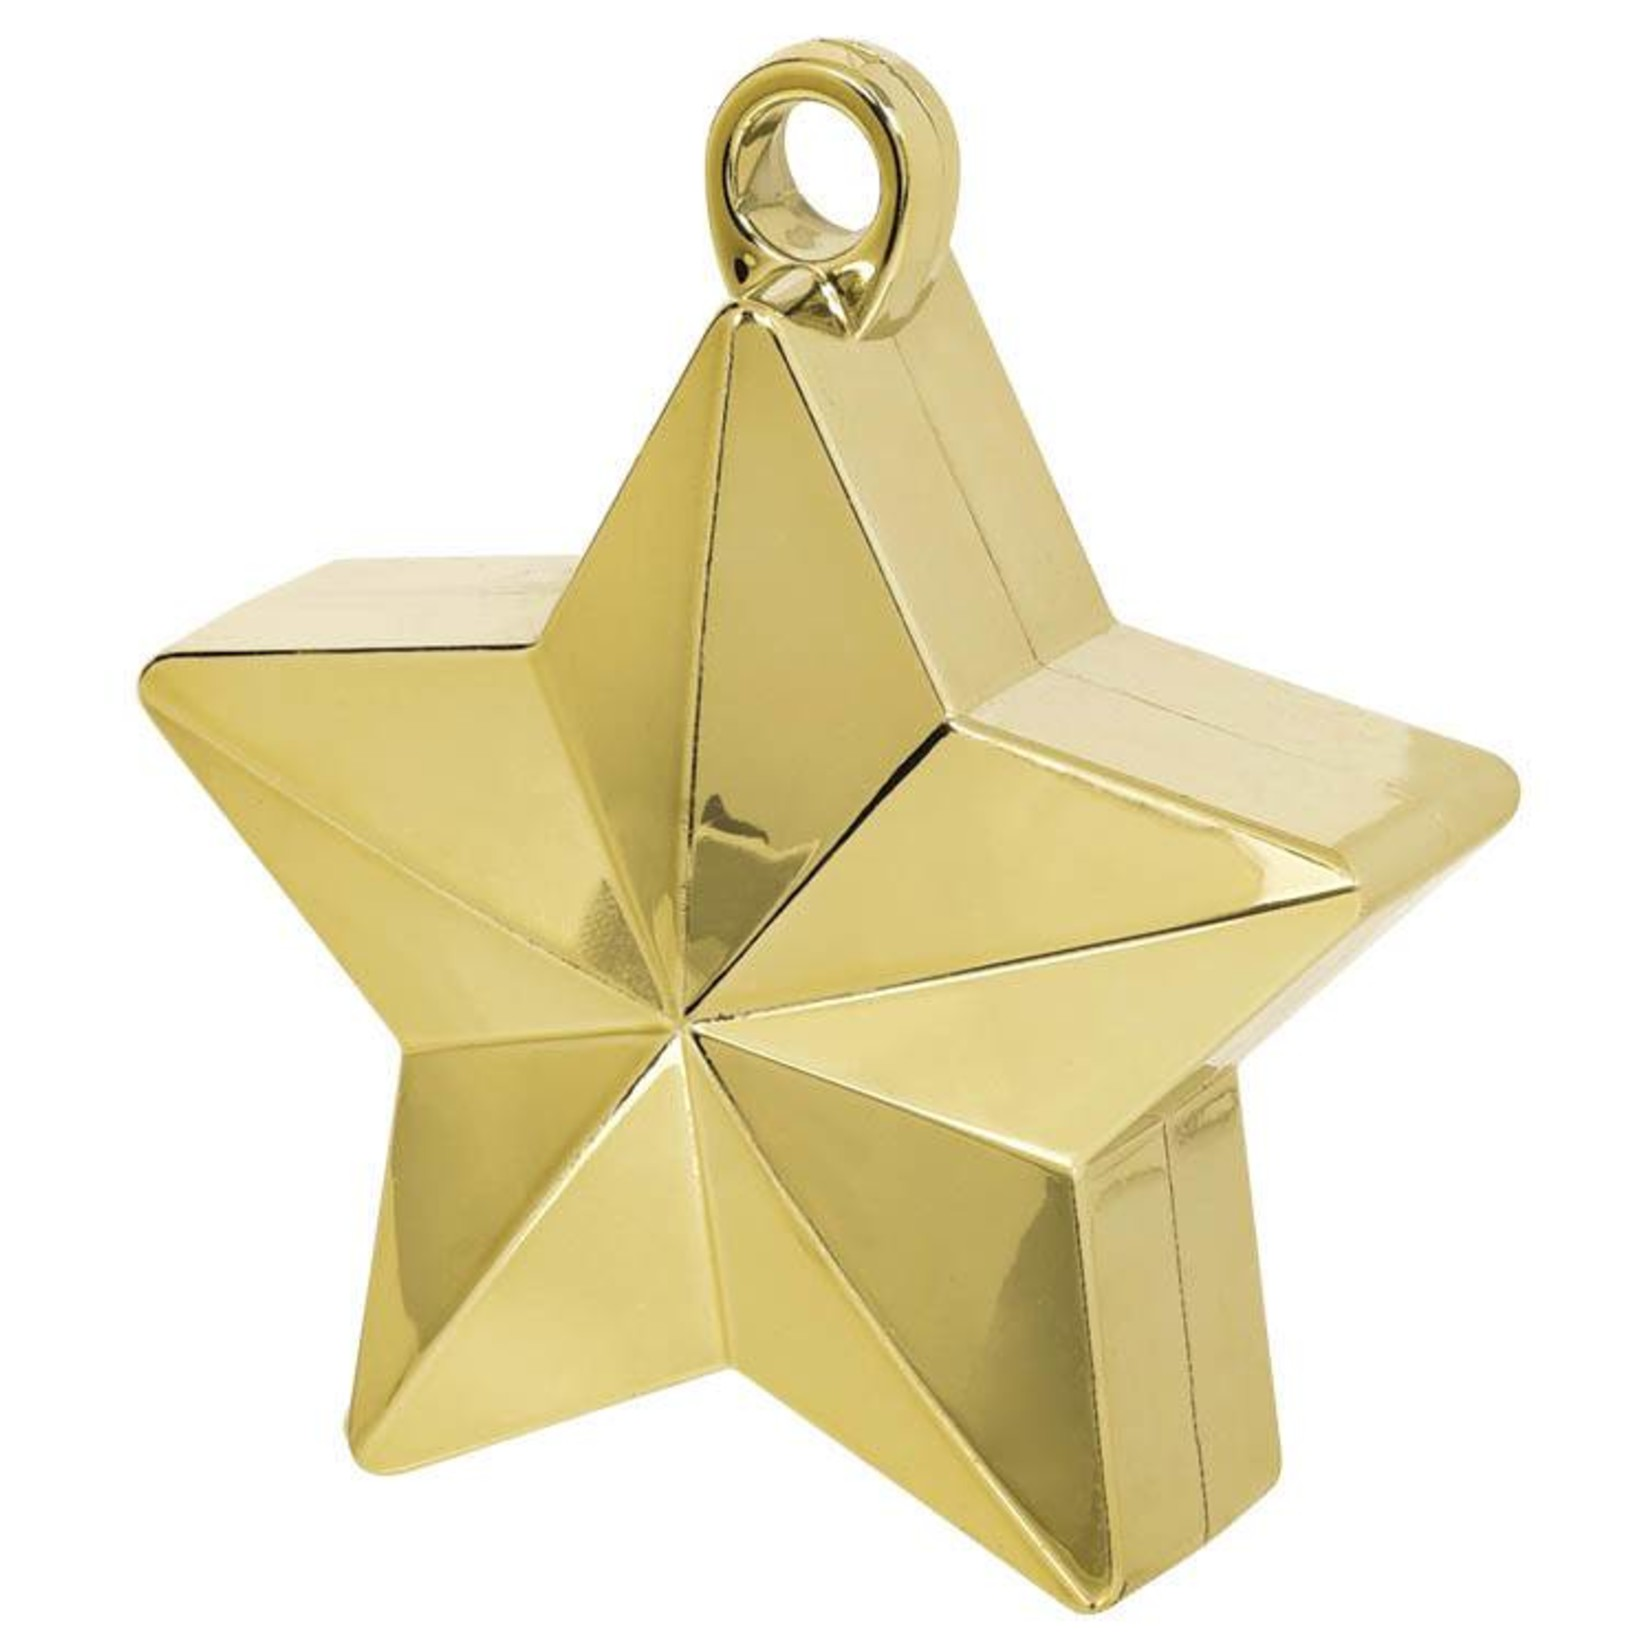 Balloon Weight-Star Electroplated-Gold-6oz